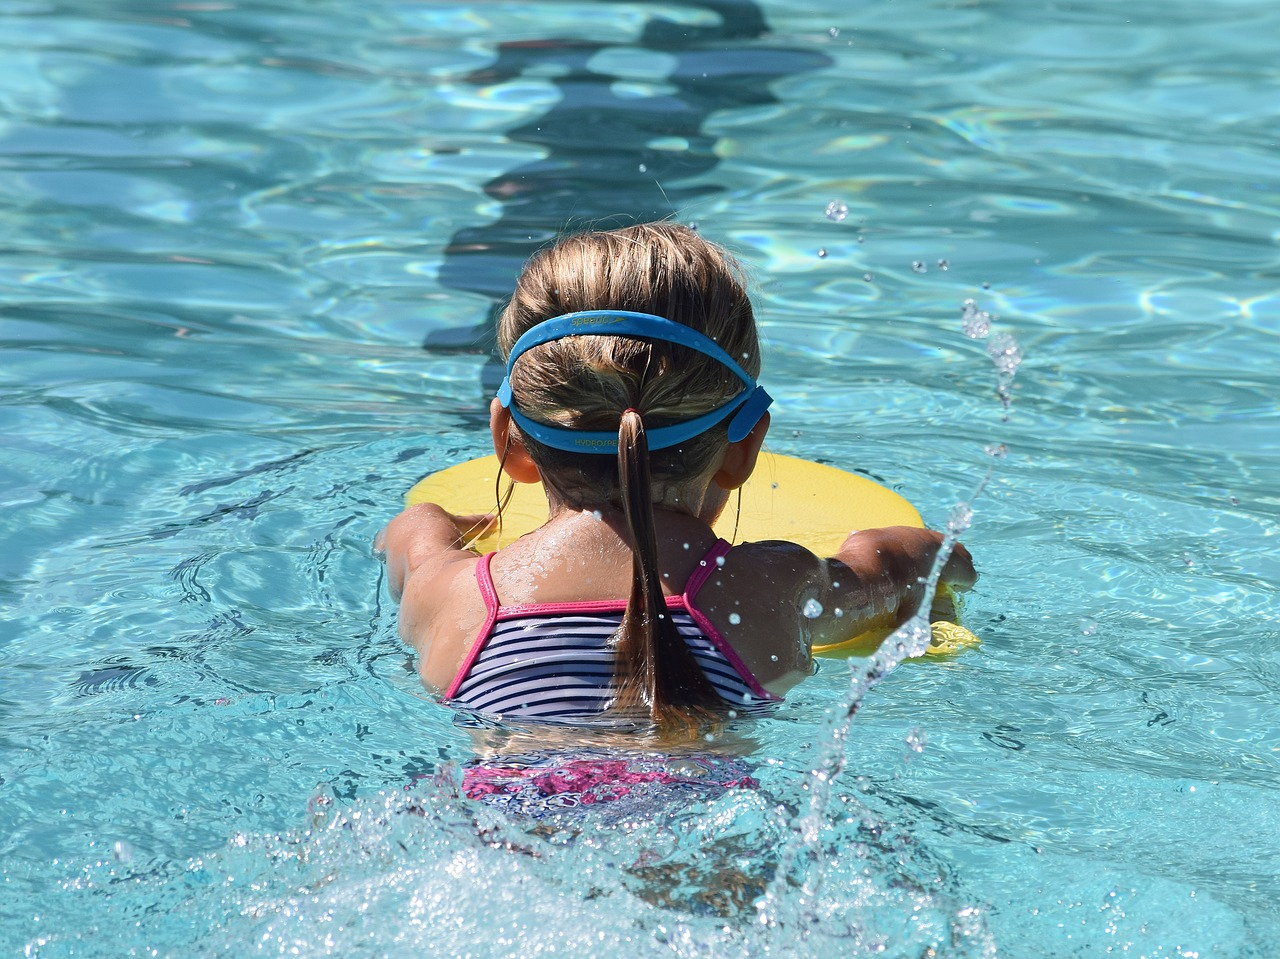 Young swimmer,child,kick board,swimming,activity - free image from needpix.com